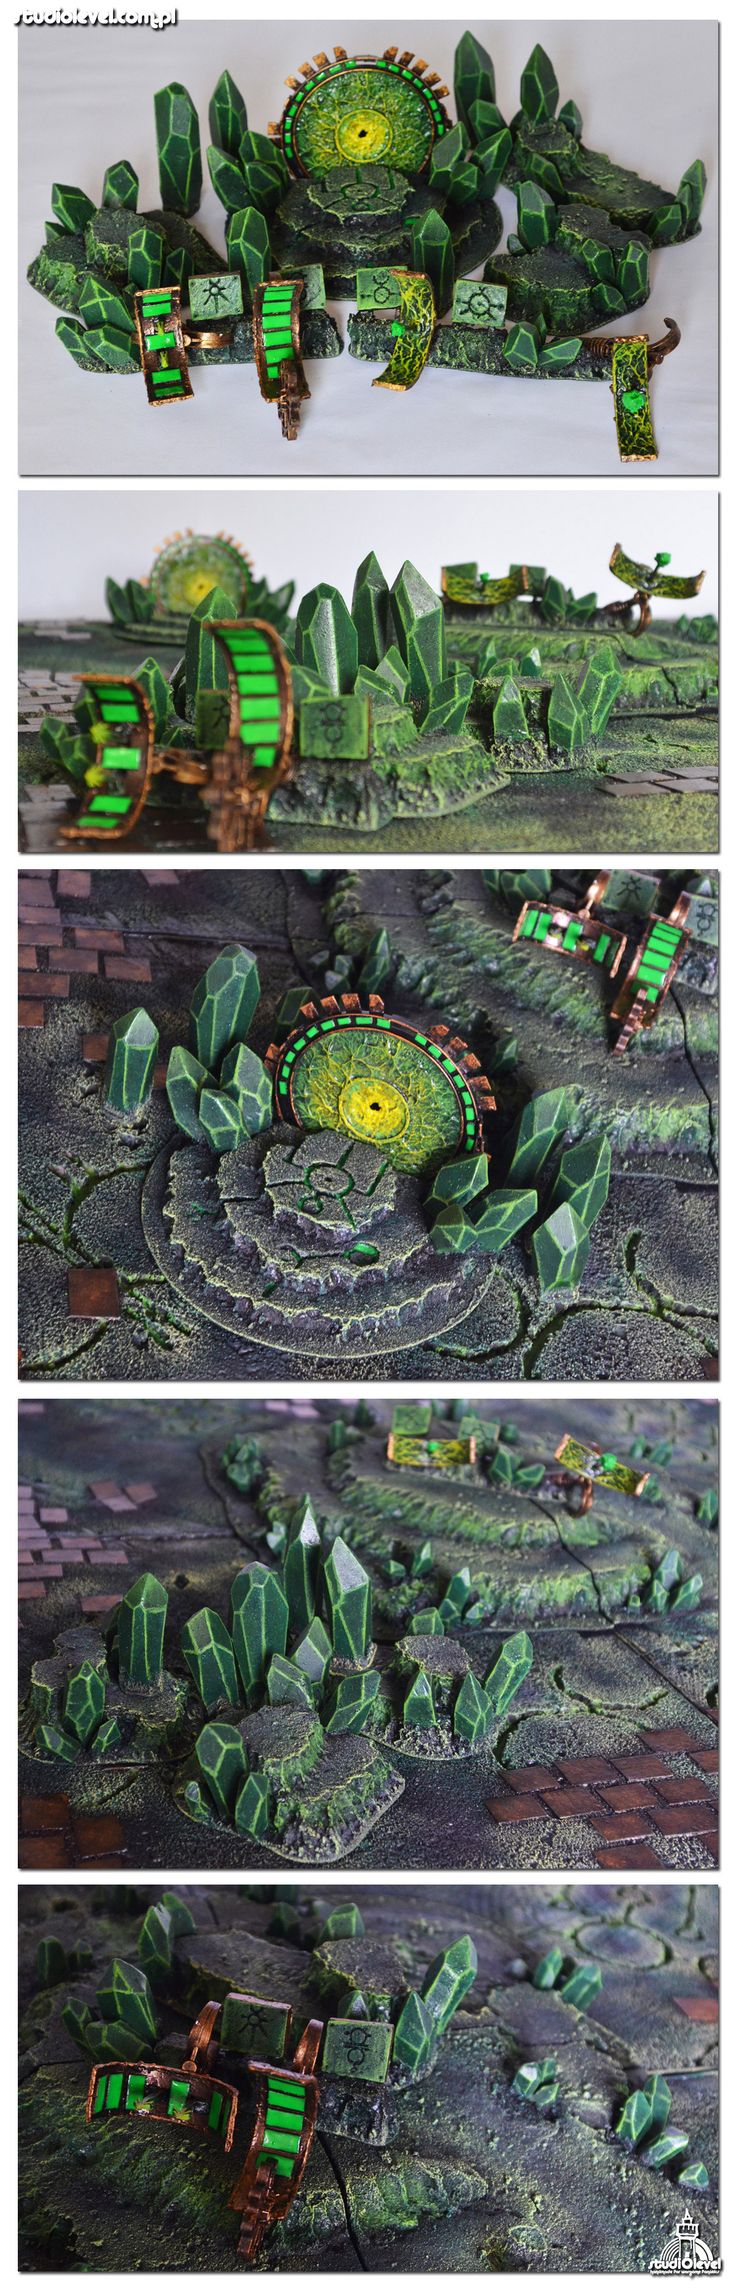 NECROPLANET MULTIPLE SYSTEM SET miniatures minis | NOT OUR ART - Please click artwork for source | WRITING INSPIRATION for Dungeons and Dragons DND Pathfinder PFRPG Warhammer 40k Star Wars Shadowrun Call of Cthulhu and other d20 roleplaying fantasy science fiction sci-fi horror location equipment monster character game design | Create your own RPG Books w/ www.rpgbard.com